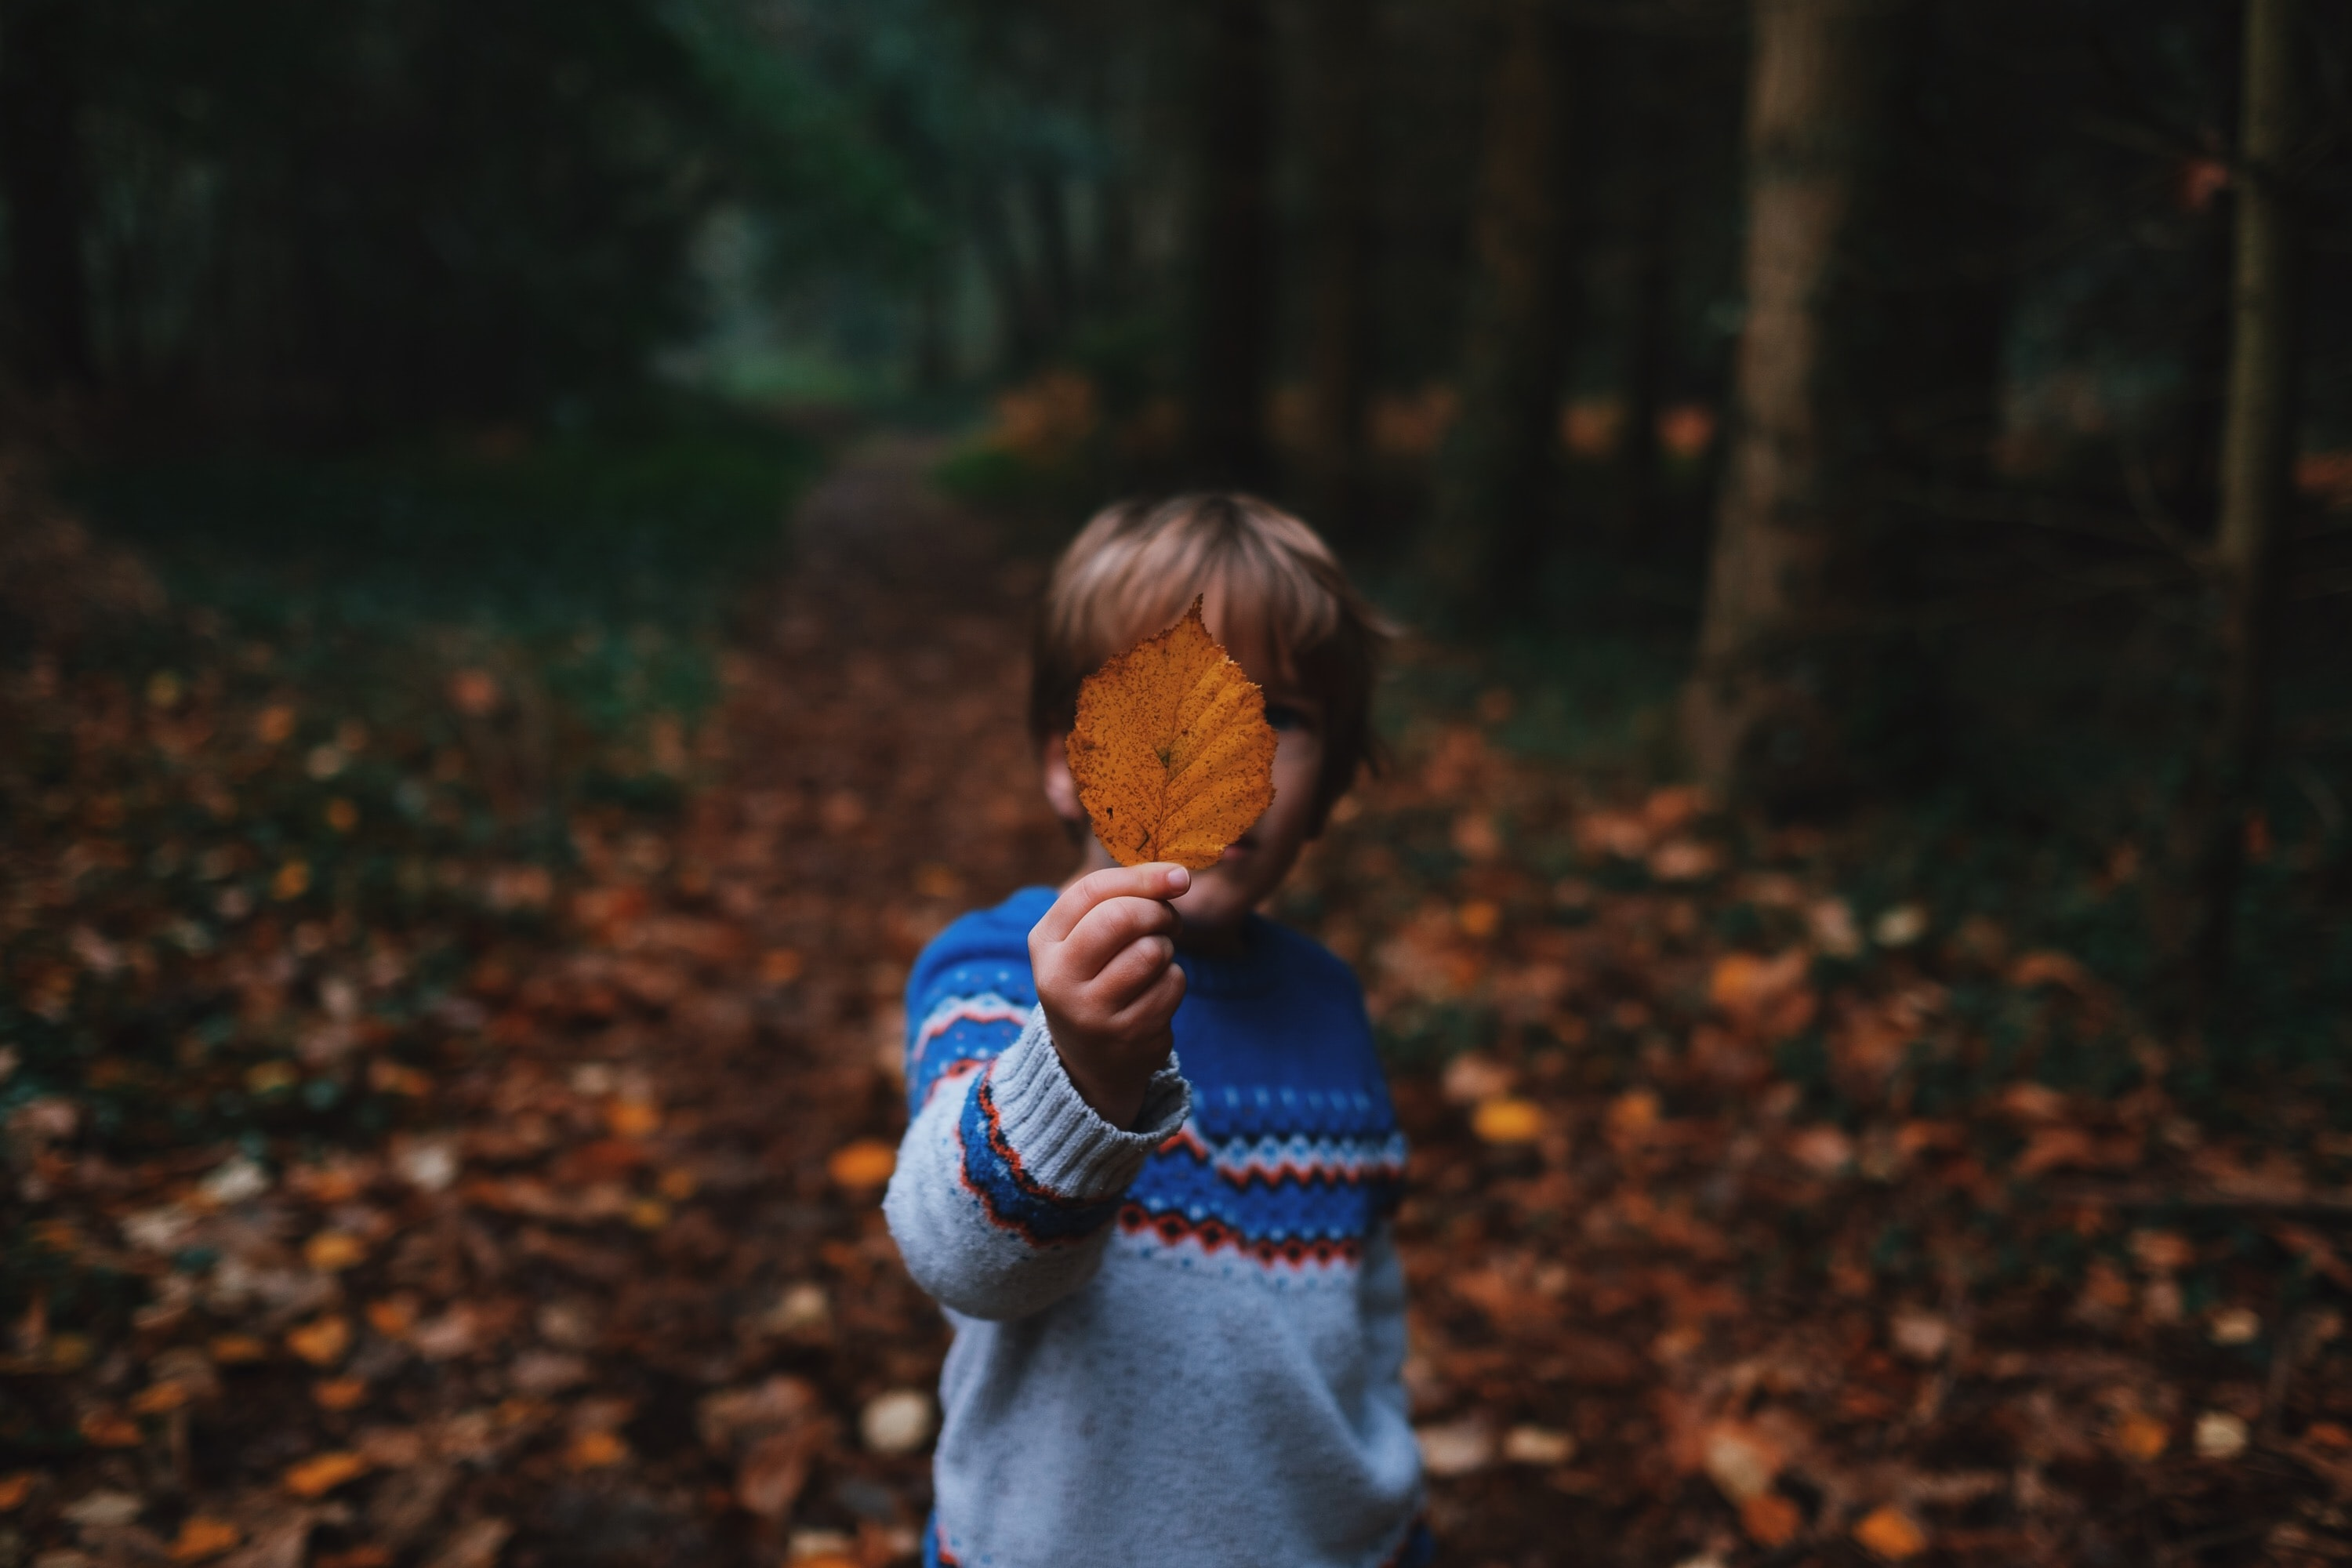 A boy is holding a yellow leaf in front of his face in a forest.